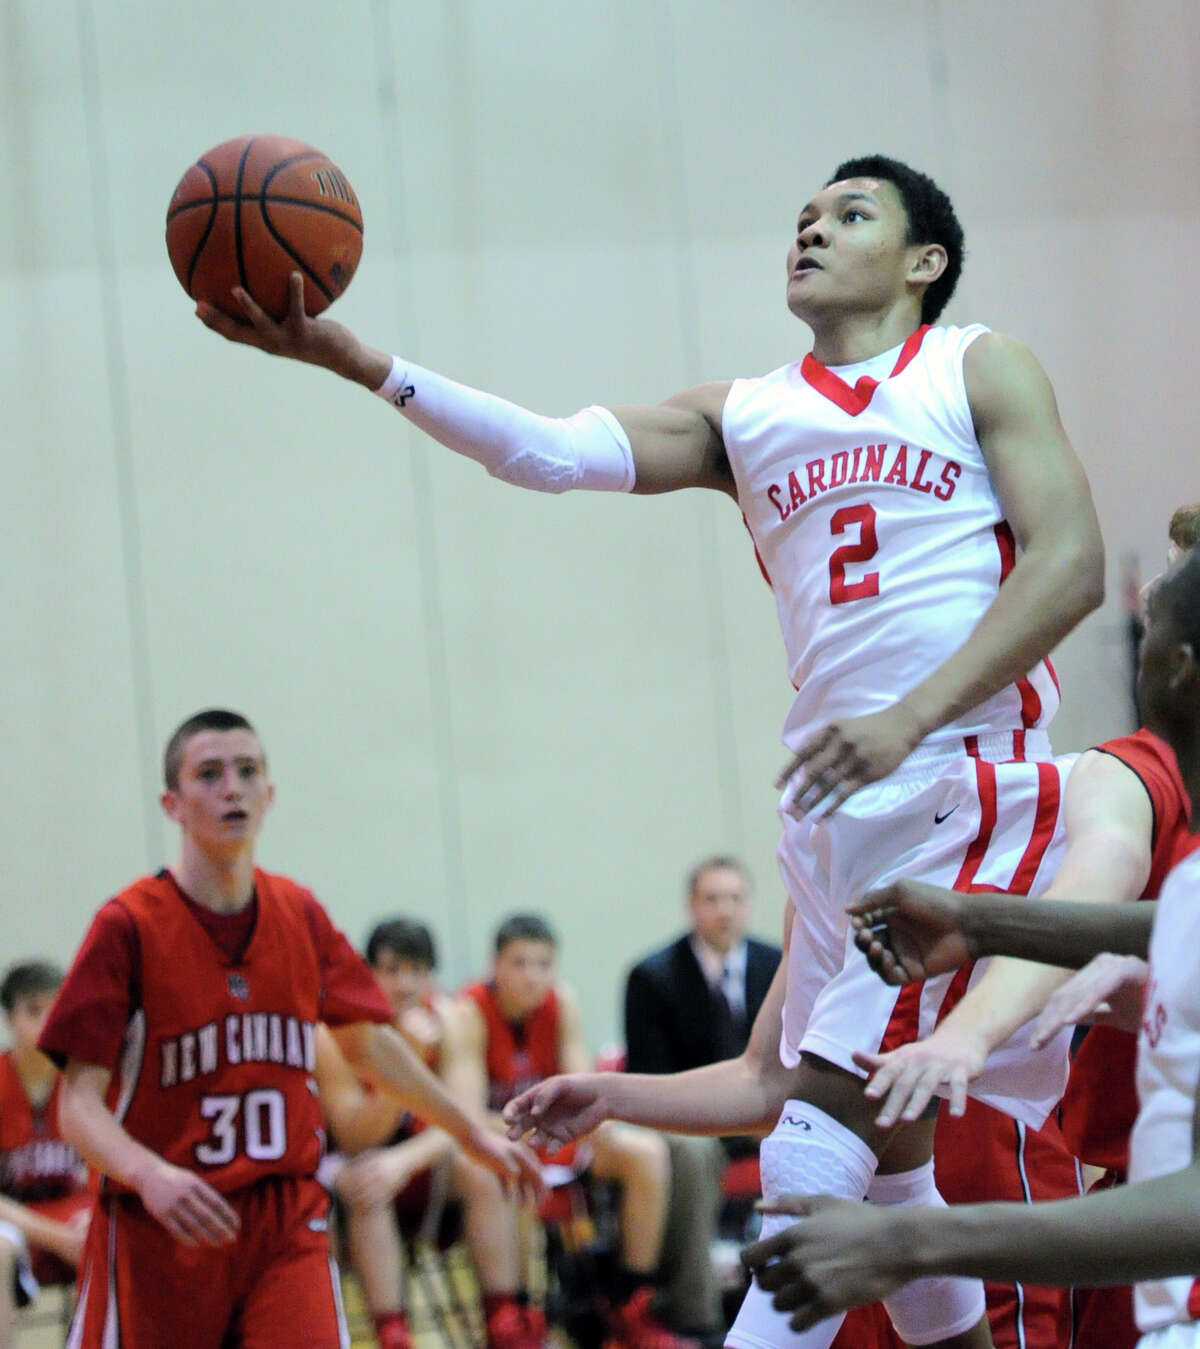 January 7 Byrd scores 20 points in helping Greenwich defeat Staples 66-36